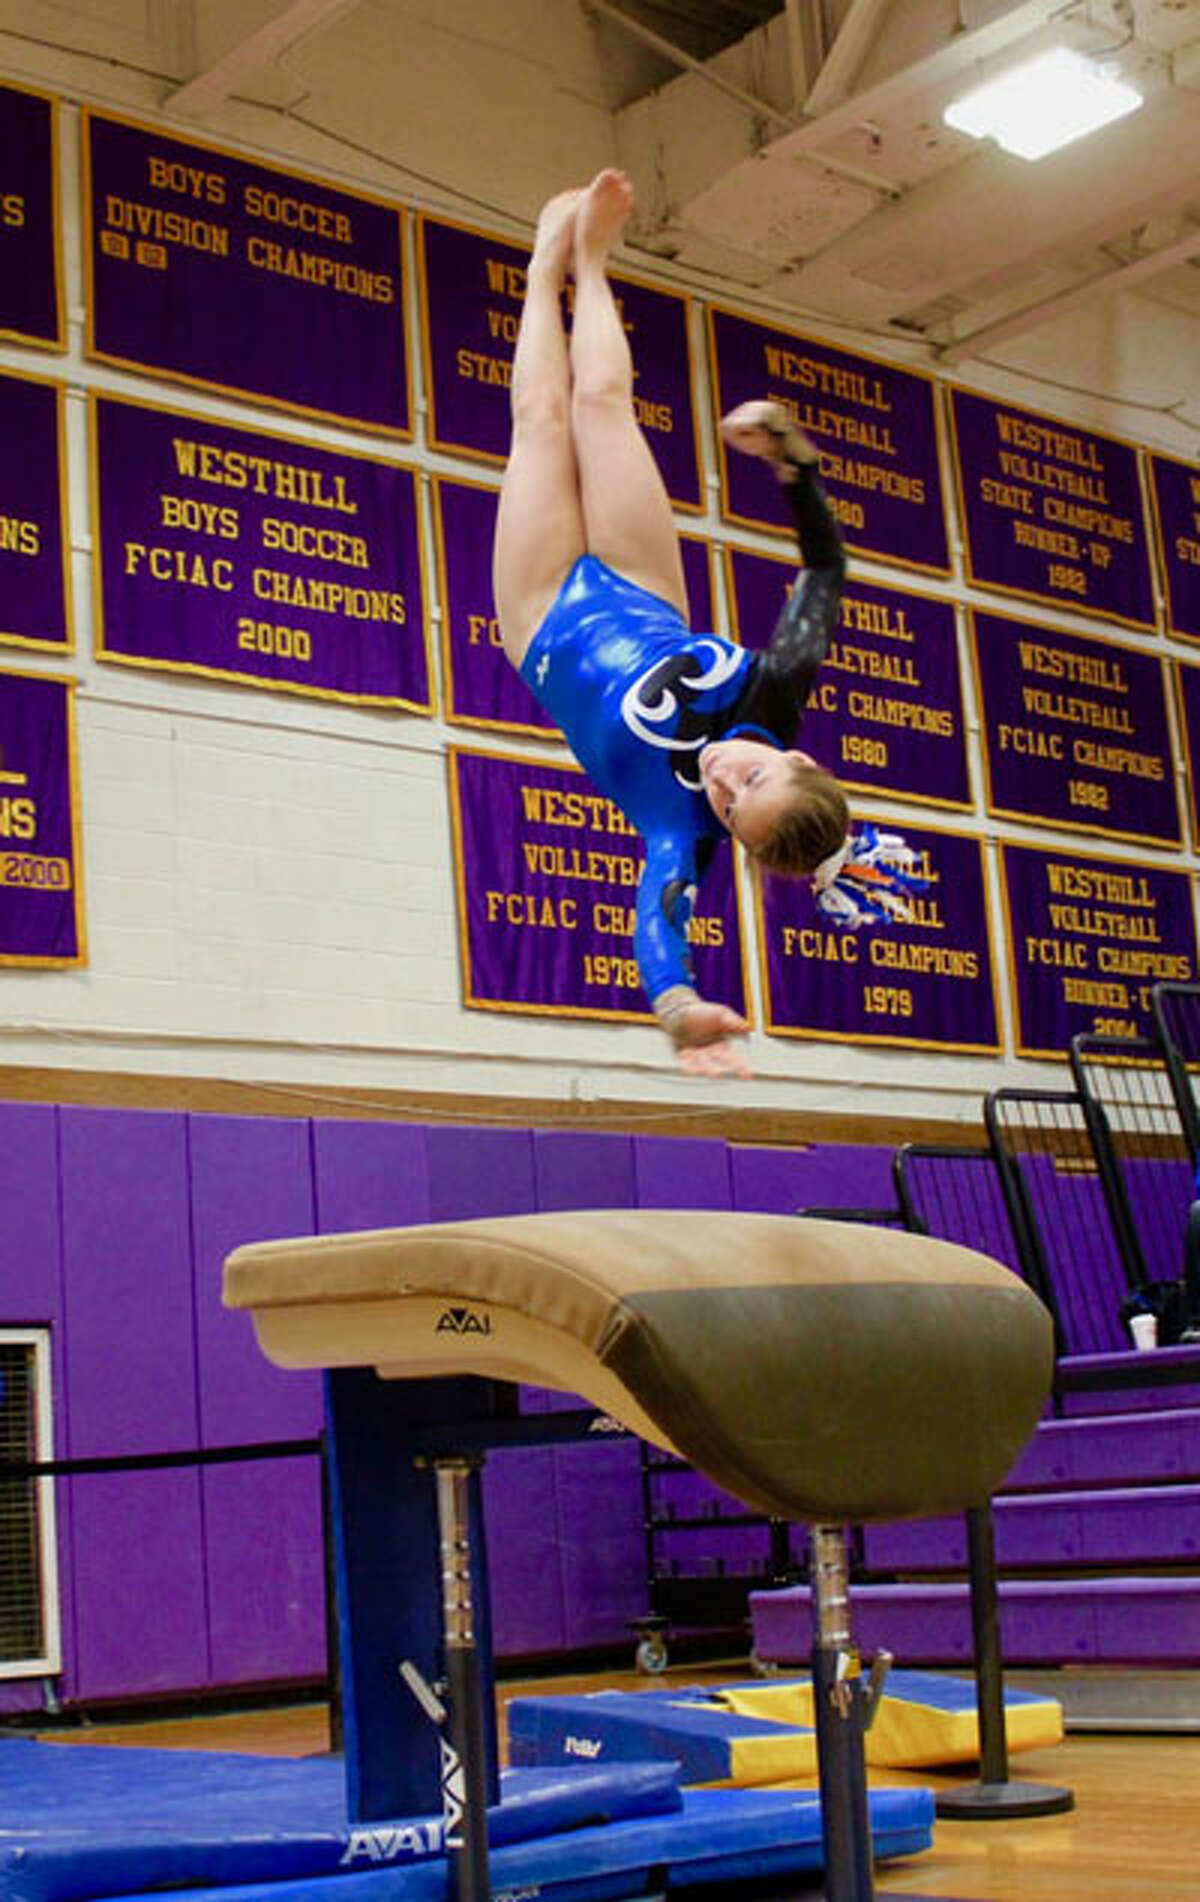 Darien junior gymnast Lana Schmidt soared on vault at the 2019 FCIAC championship meet on Saturday, scoring 8.75 for fifth place and earn a place on the All-FCIAC First Team. - Lily Fairleigh/Contributed photo